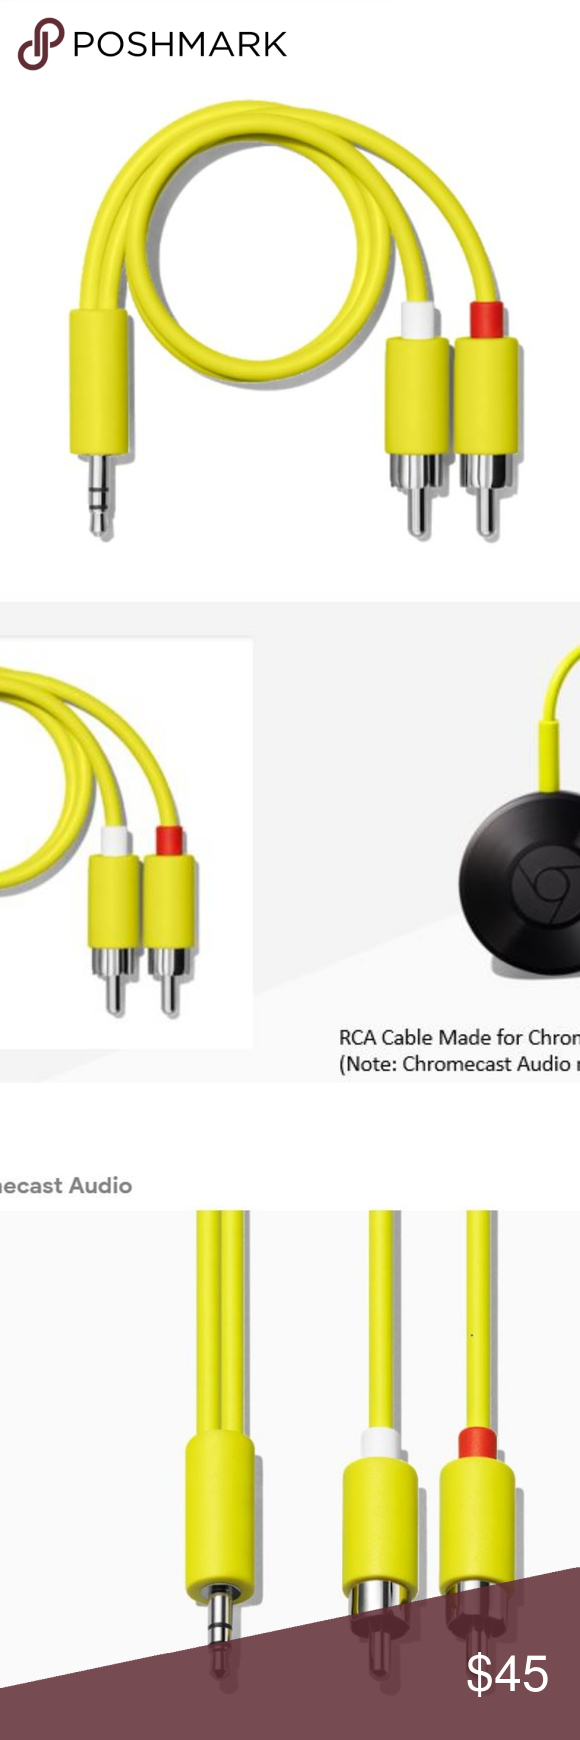 medium resolution of google optical cable chromecast audio google chromecast audio optical cable this item is brand new